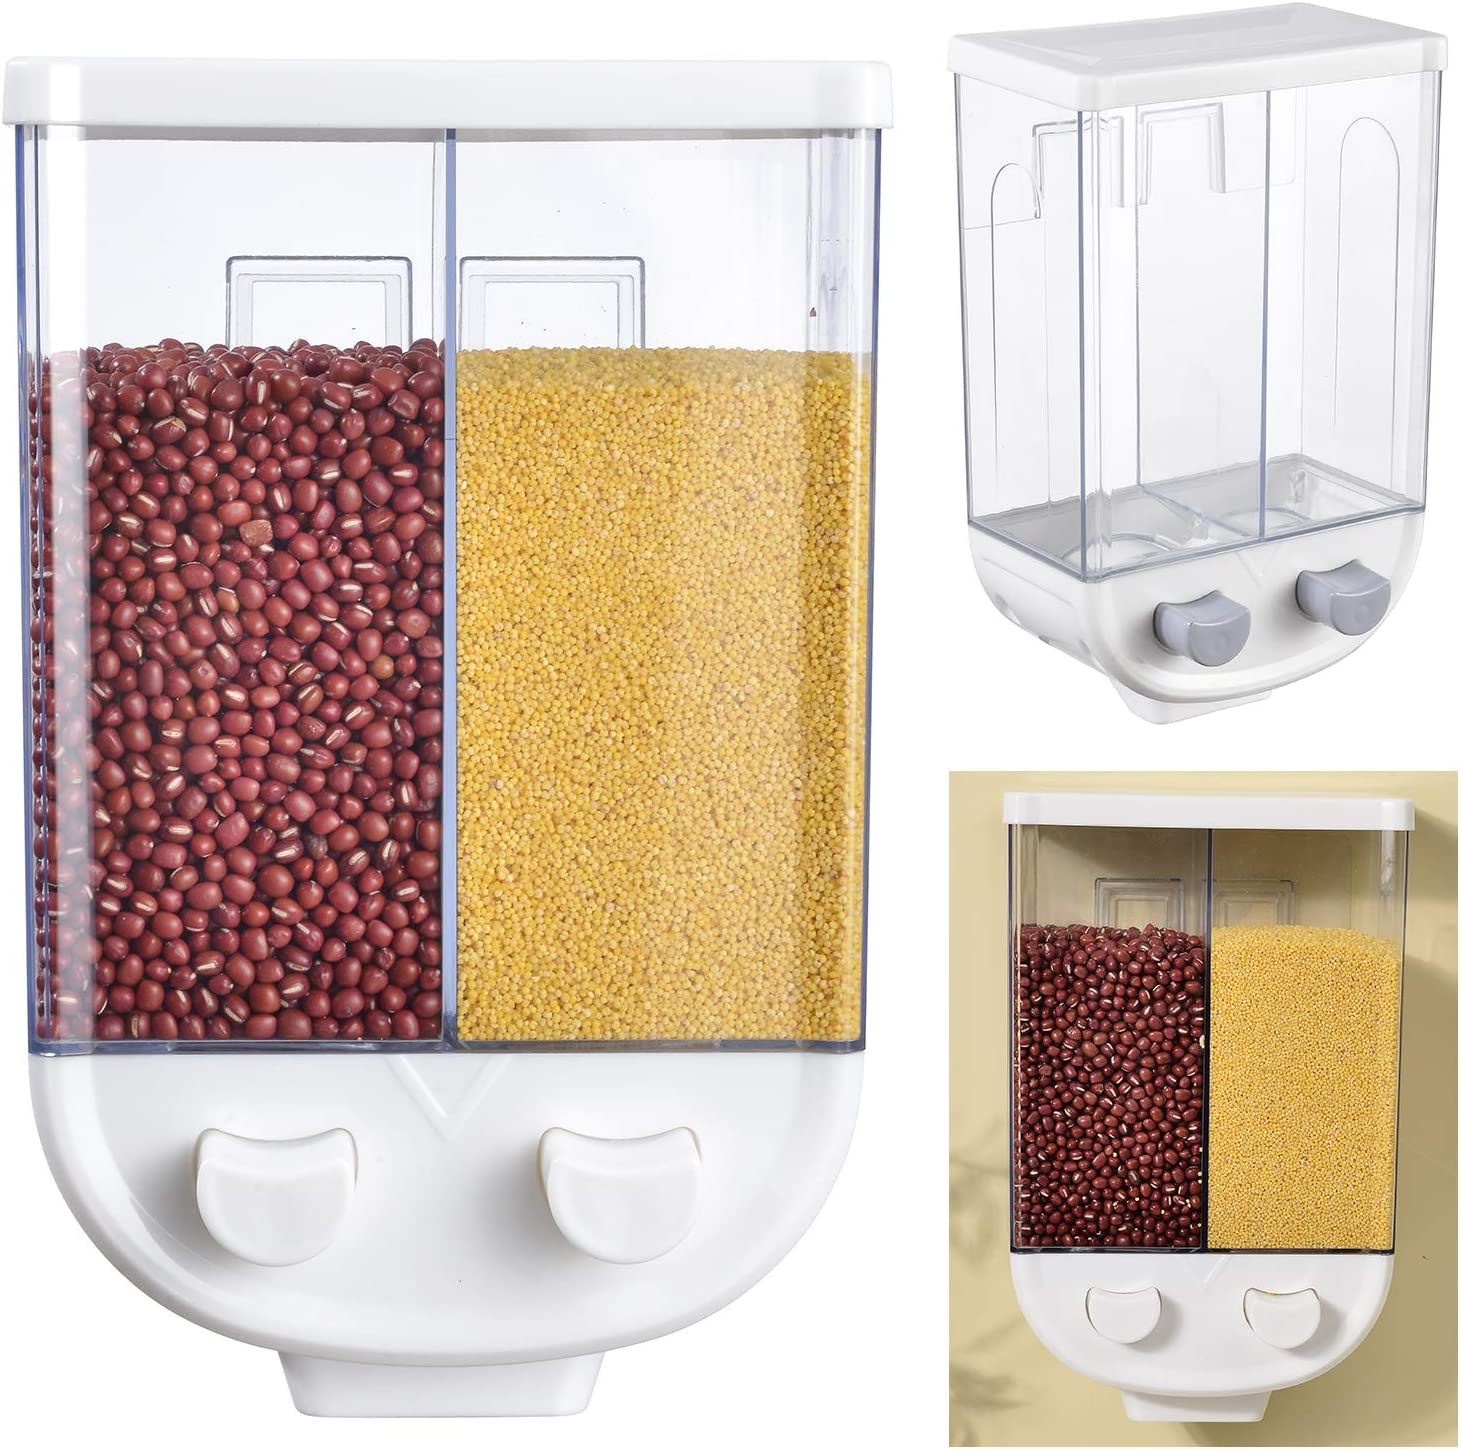 Wall Mounted Dry Food Dispenser - 2-Grid Storage Kitchen Food Dry Food Dispenser, Whole Grains Rice Bucket Wall-Mounted Rice Storage Tank For Home and Kitchen